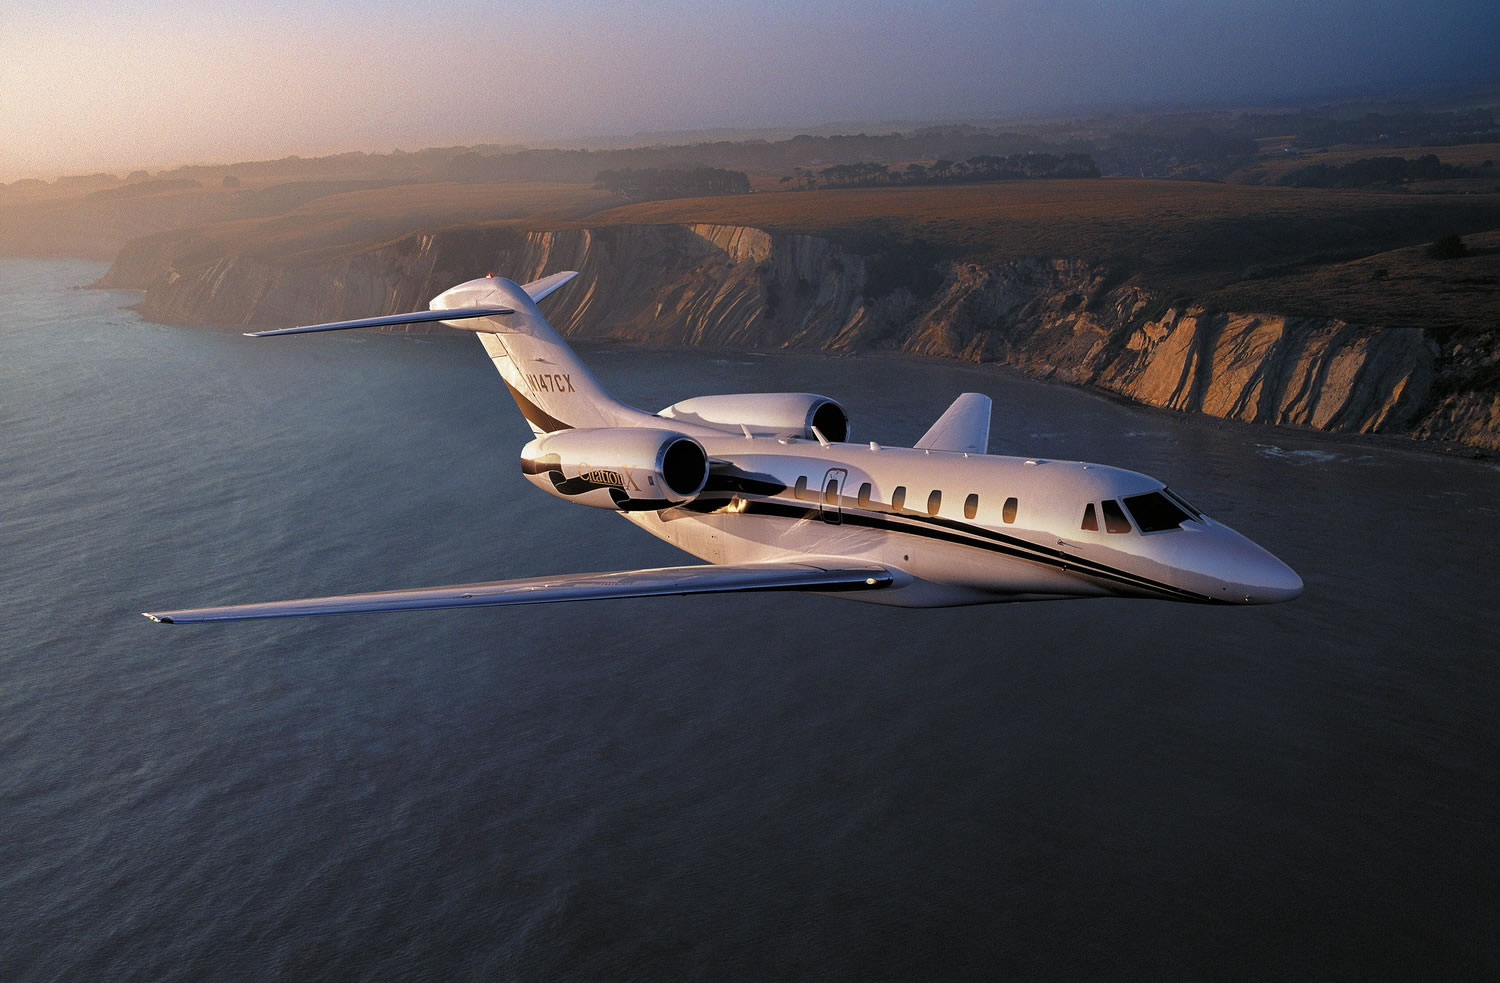 Сessna 750 Citation X